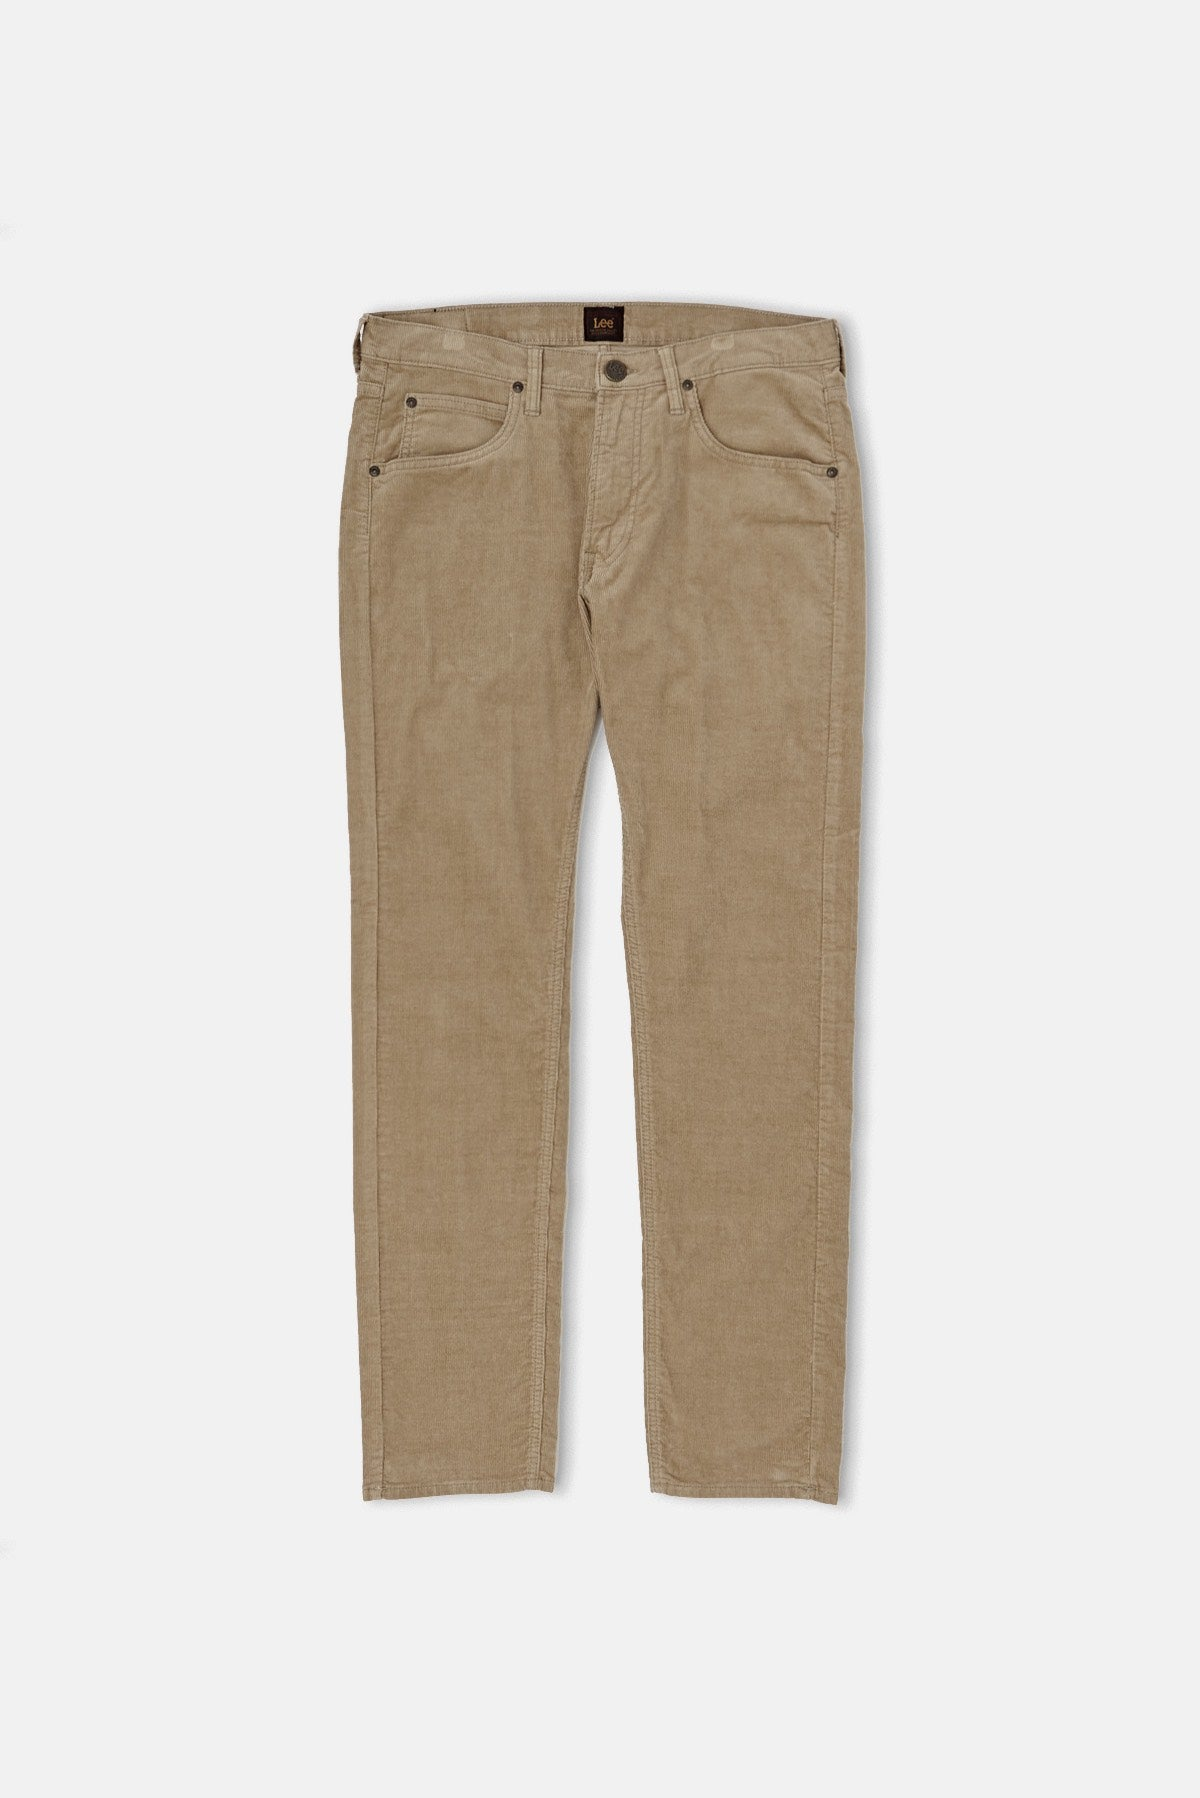 7030d6ba Lee Daren Zip Fly Jeans available from Priory